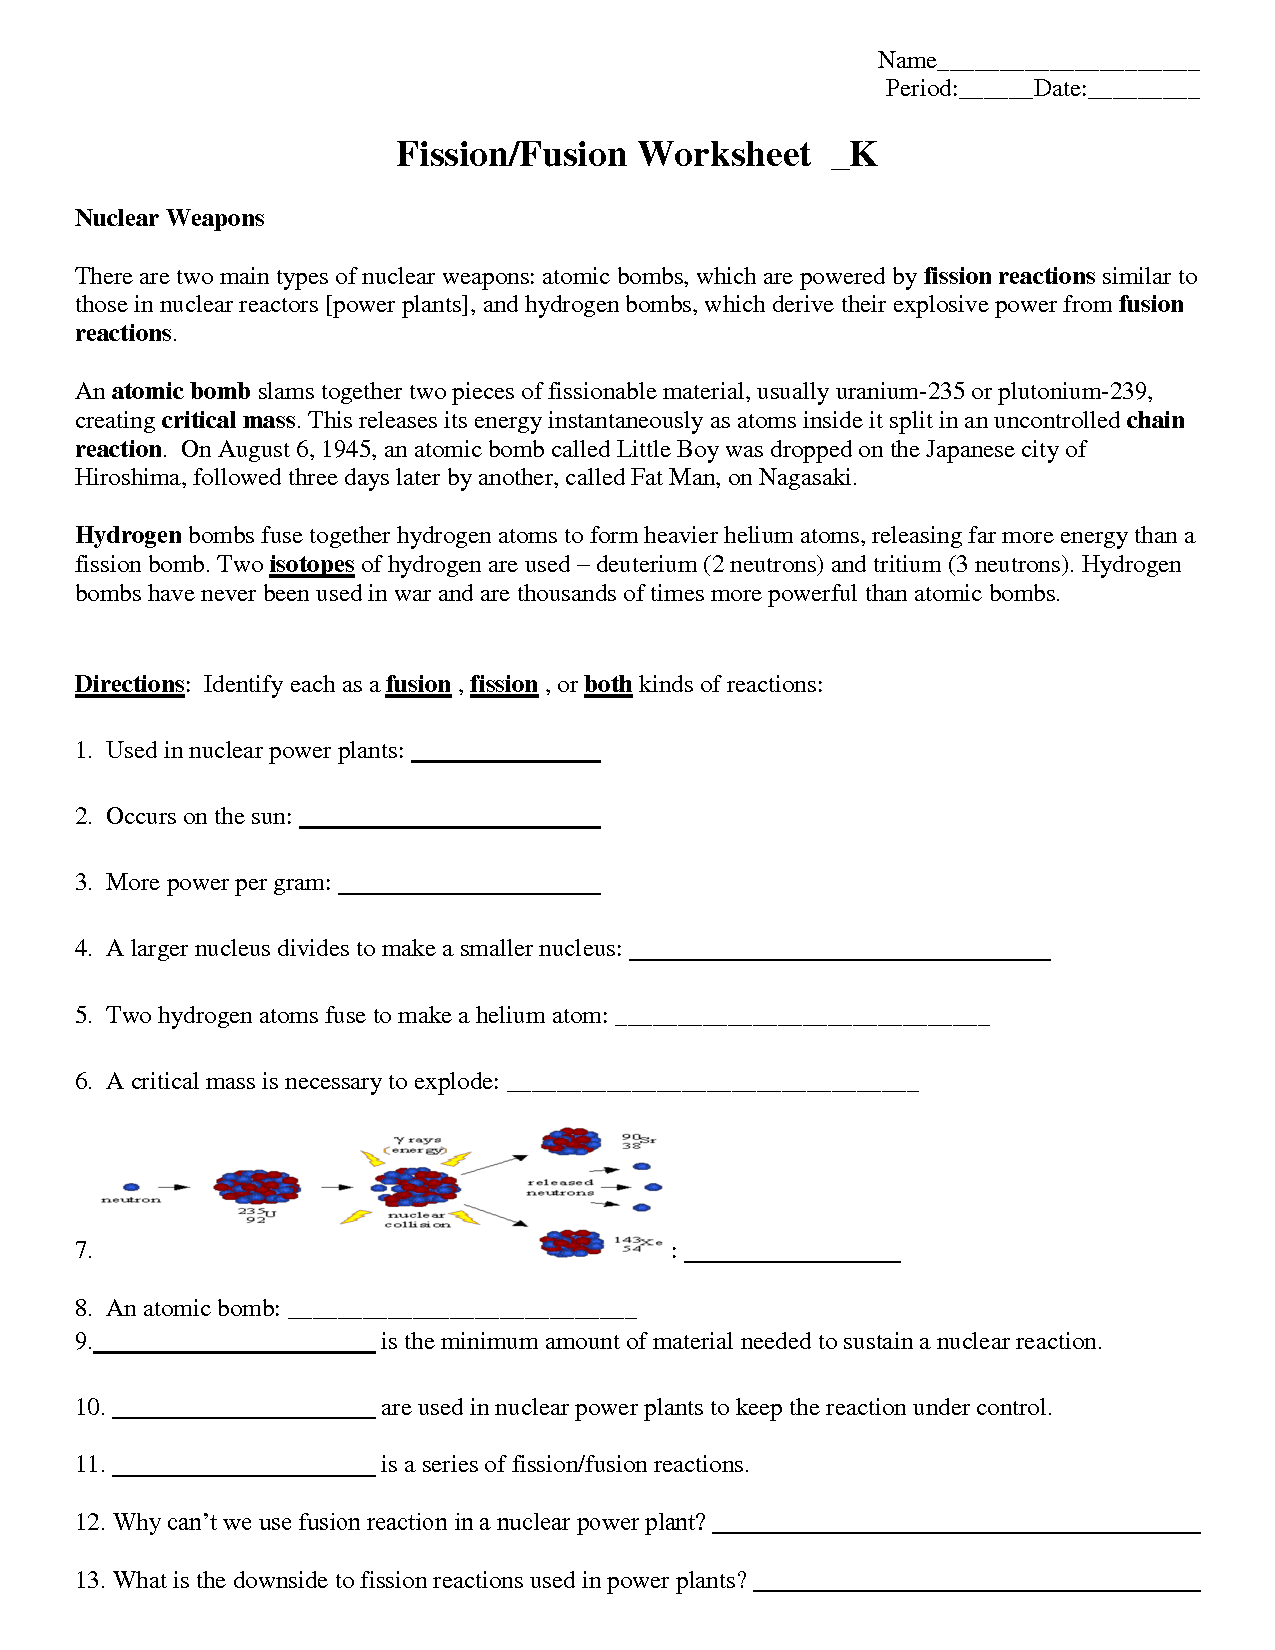 Nuclear Fission And Fusion Worksheet Pogil Answers Tom Schoderbek Chemistry Nuclear Fission And